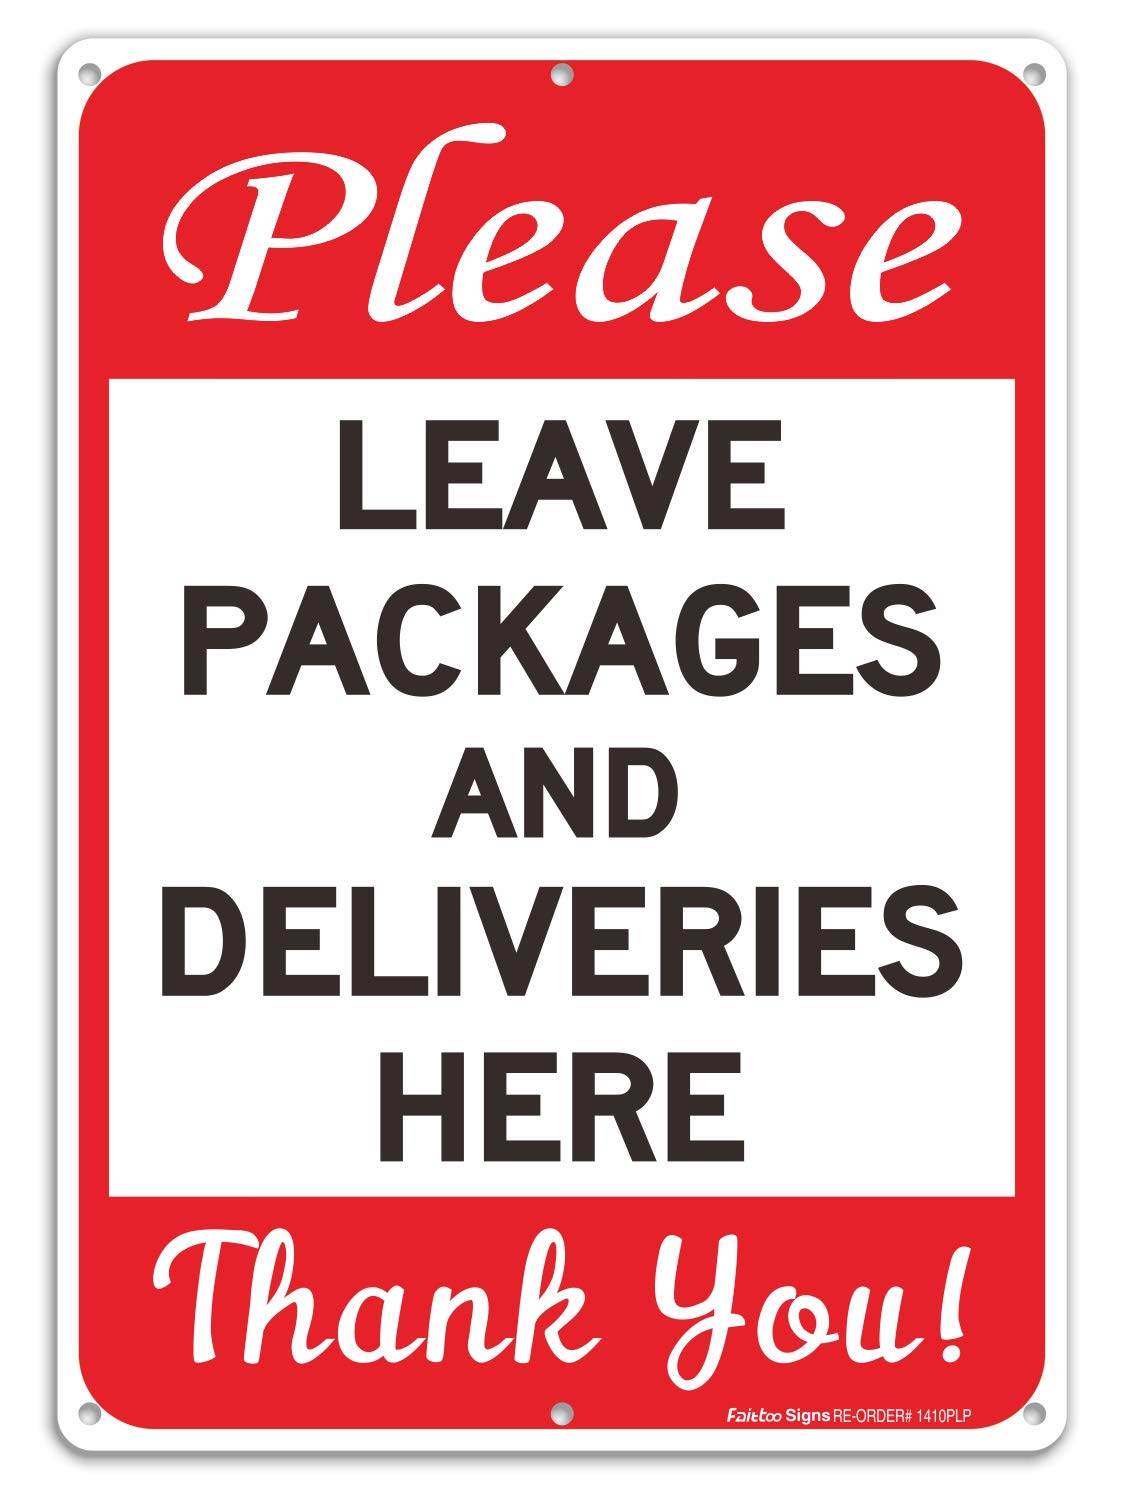 Please Leave Packages and Deliveries Here Sign, Reflective .40 Rust Free Aluminum 14 x 10 Inches, UV Protected, Weather Resistant, Waterproof, Durable Ink, Easy to Mount